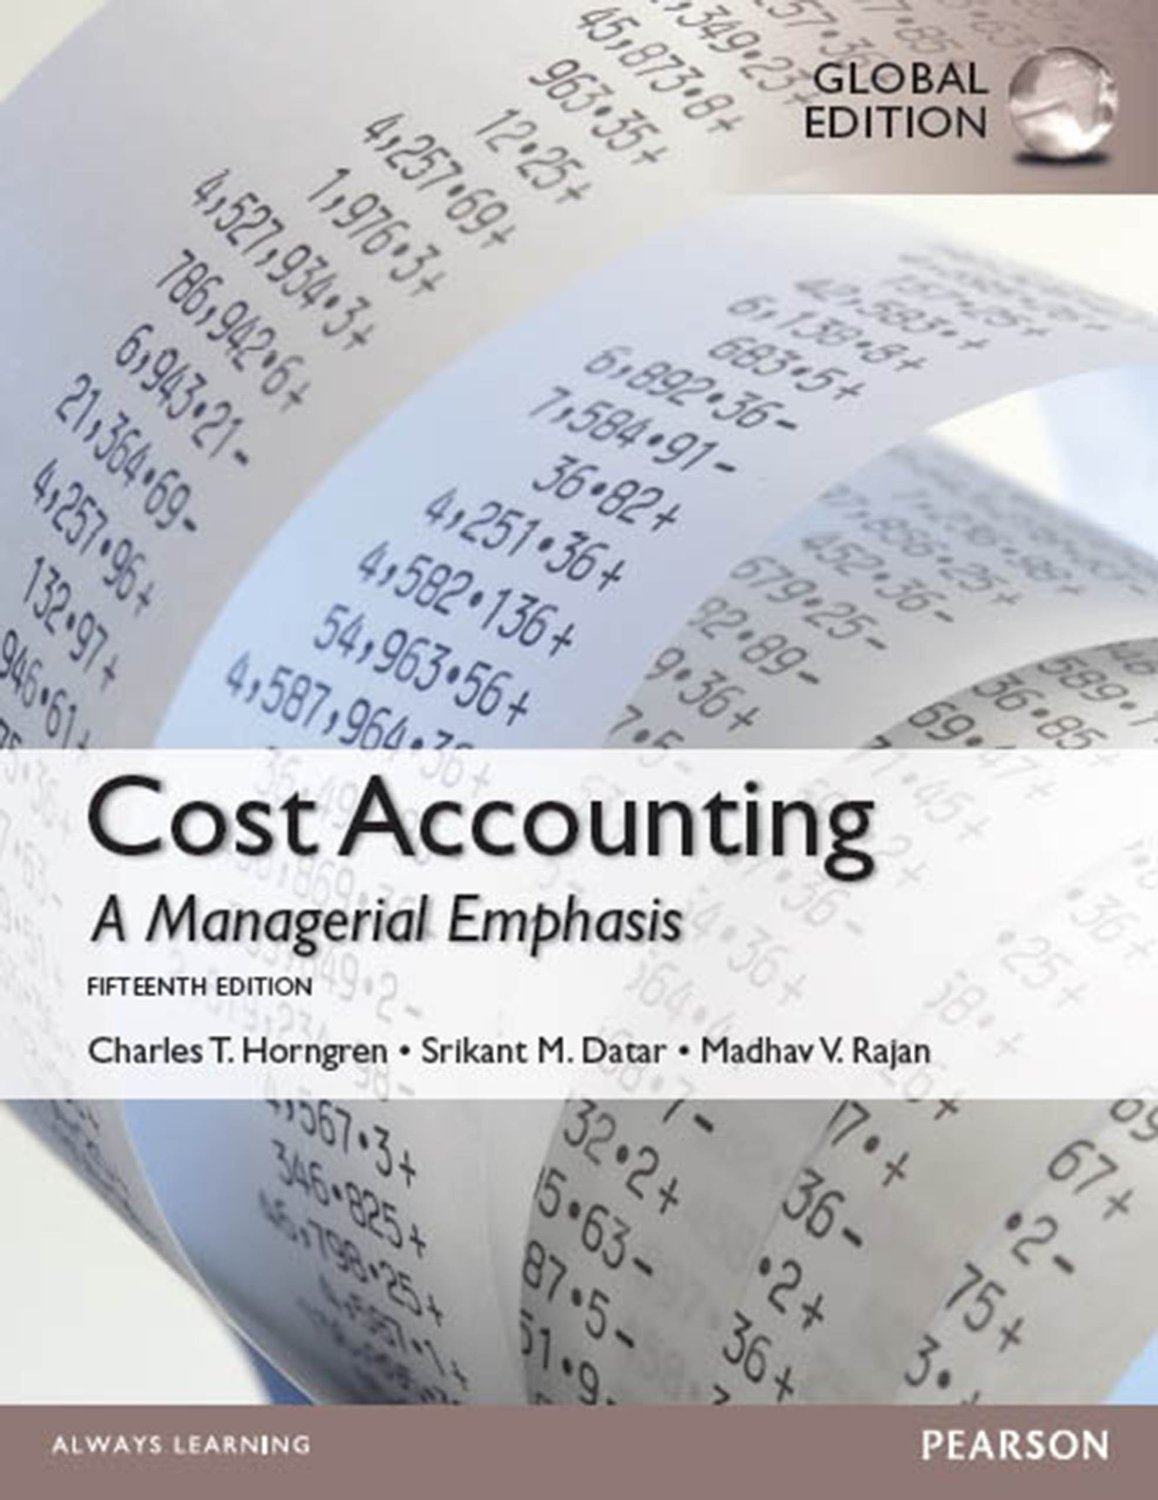 solution manual cost accounting managerial emphasis Read and download cost accounting a managerial emphasis 14th edition solution manual free ebooks in pdf format cost accounting cost accounting cost accounting cost.